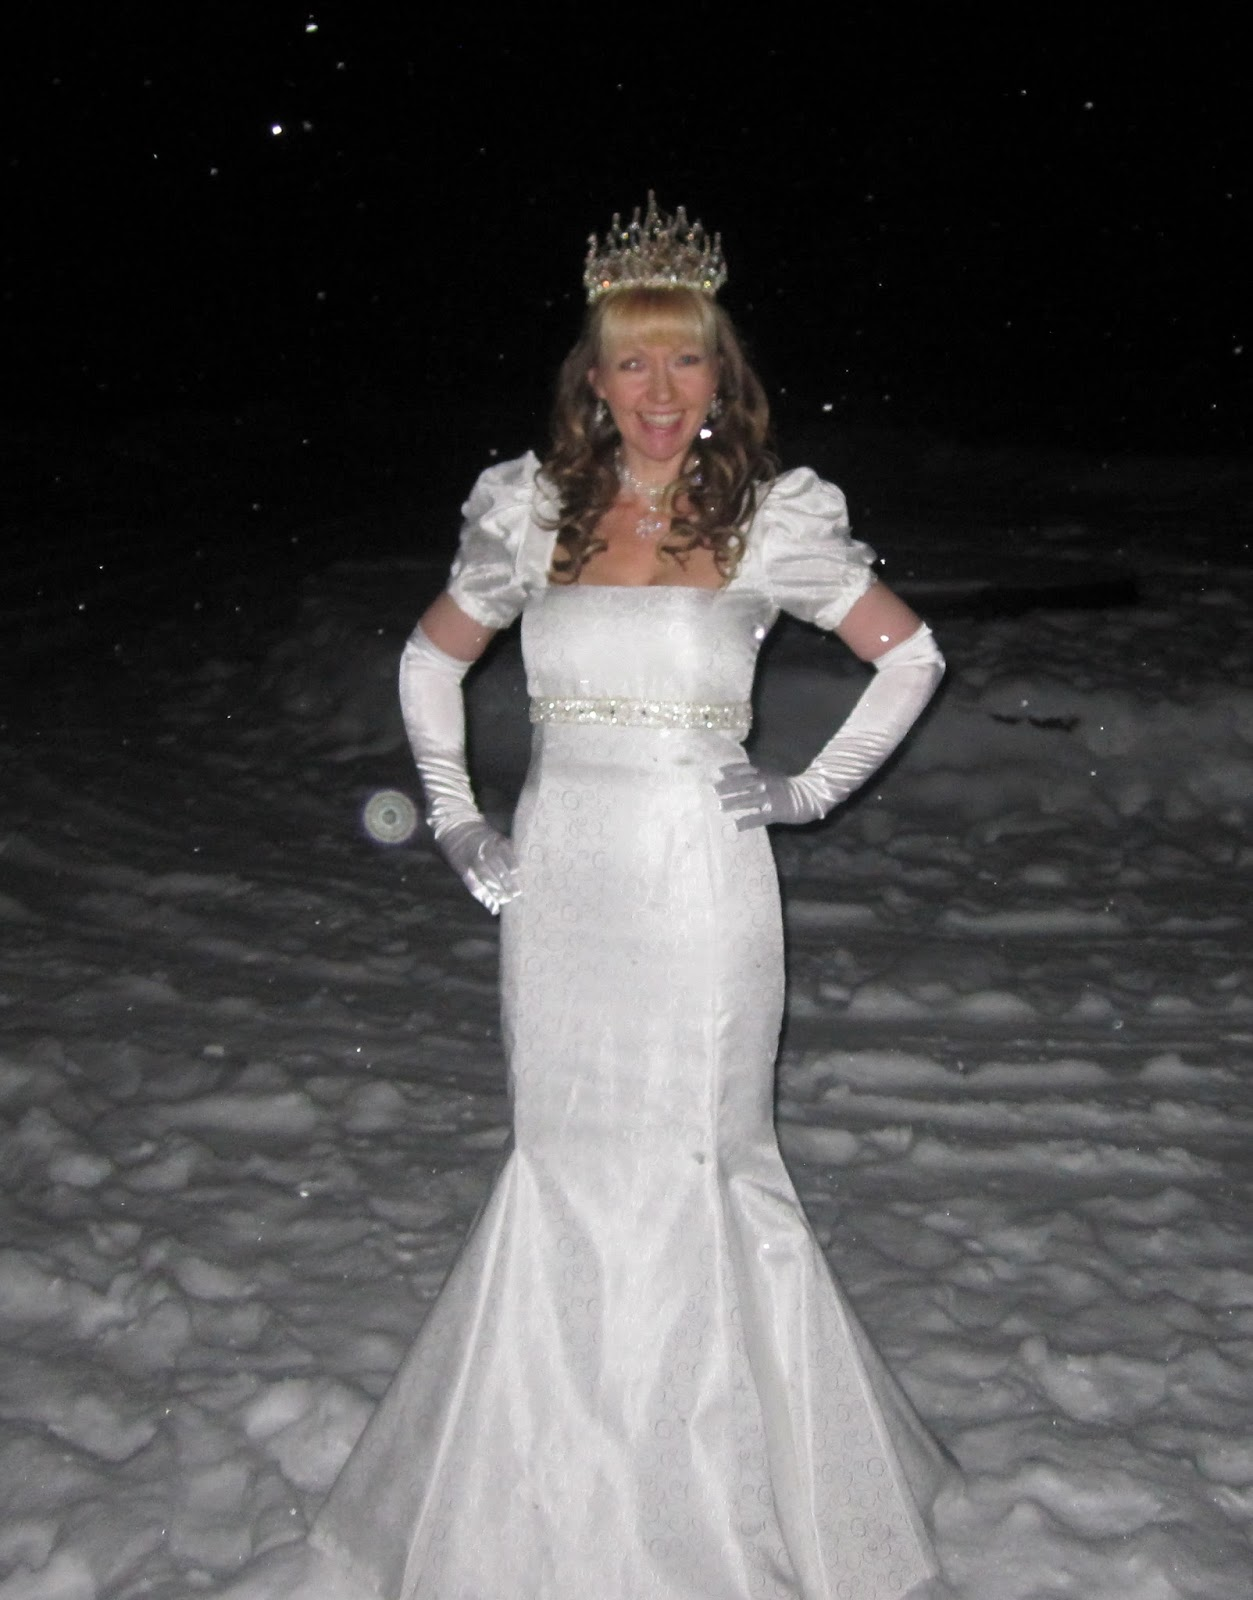 From Winter Queen To Snow Princess